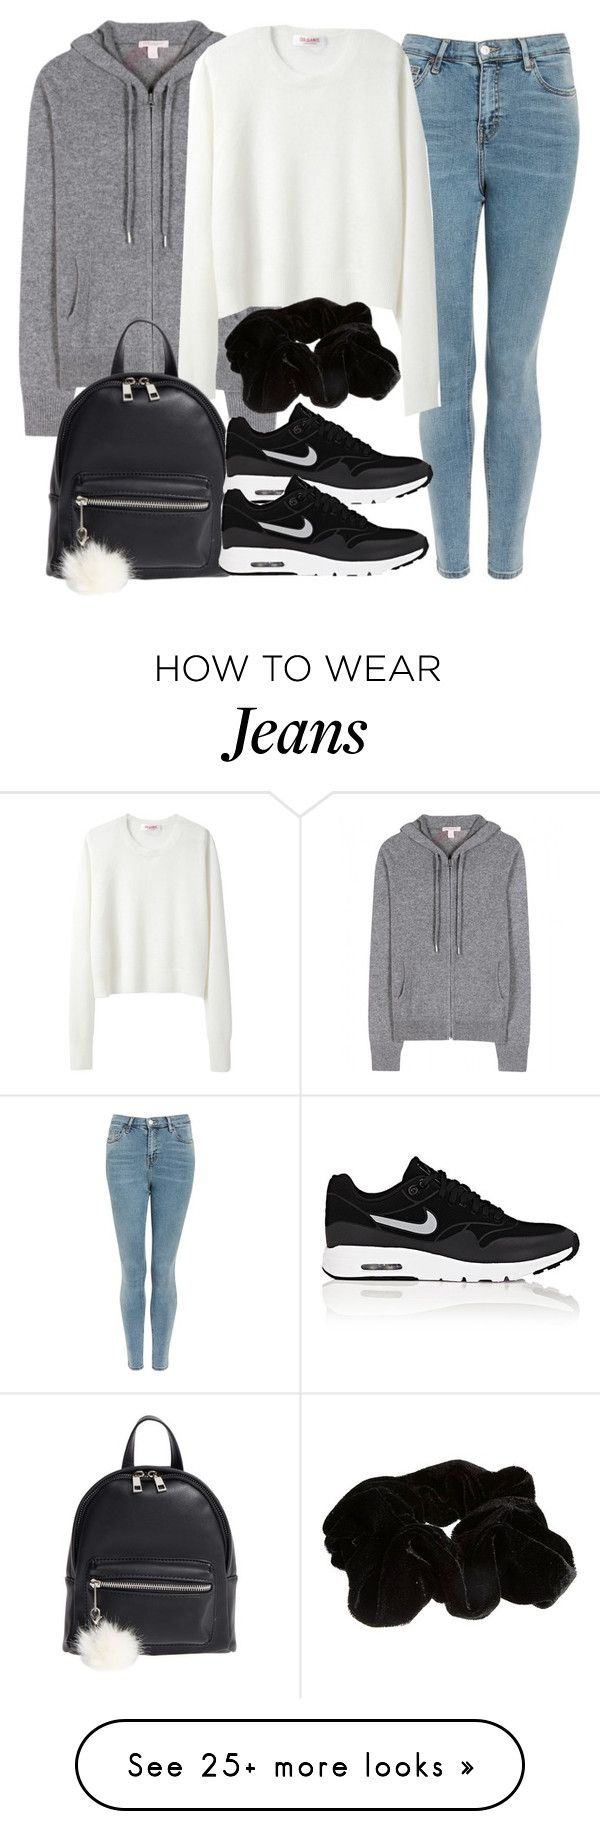 """Sin título #14411"" by vany-alvarado on Polyvore featuring Topshop, Burberry, Organic by John Patrick, BP., NIKE and River Island"